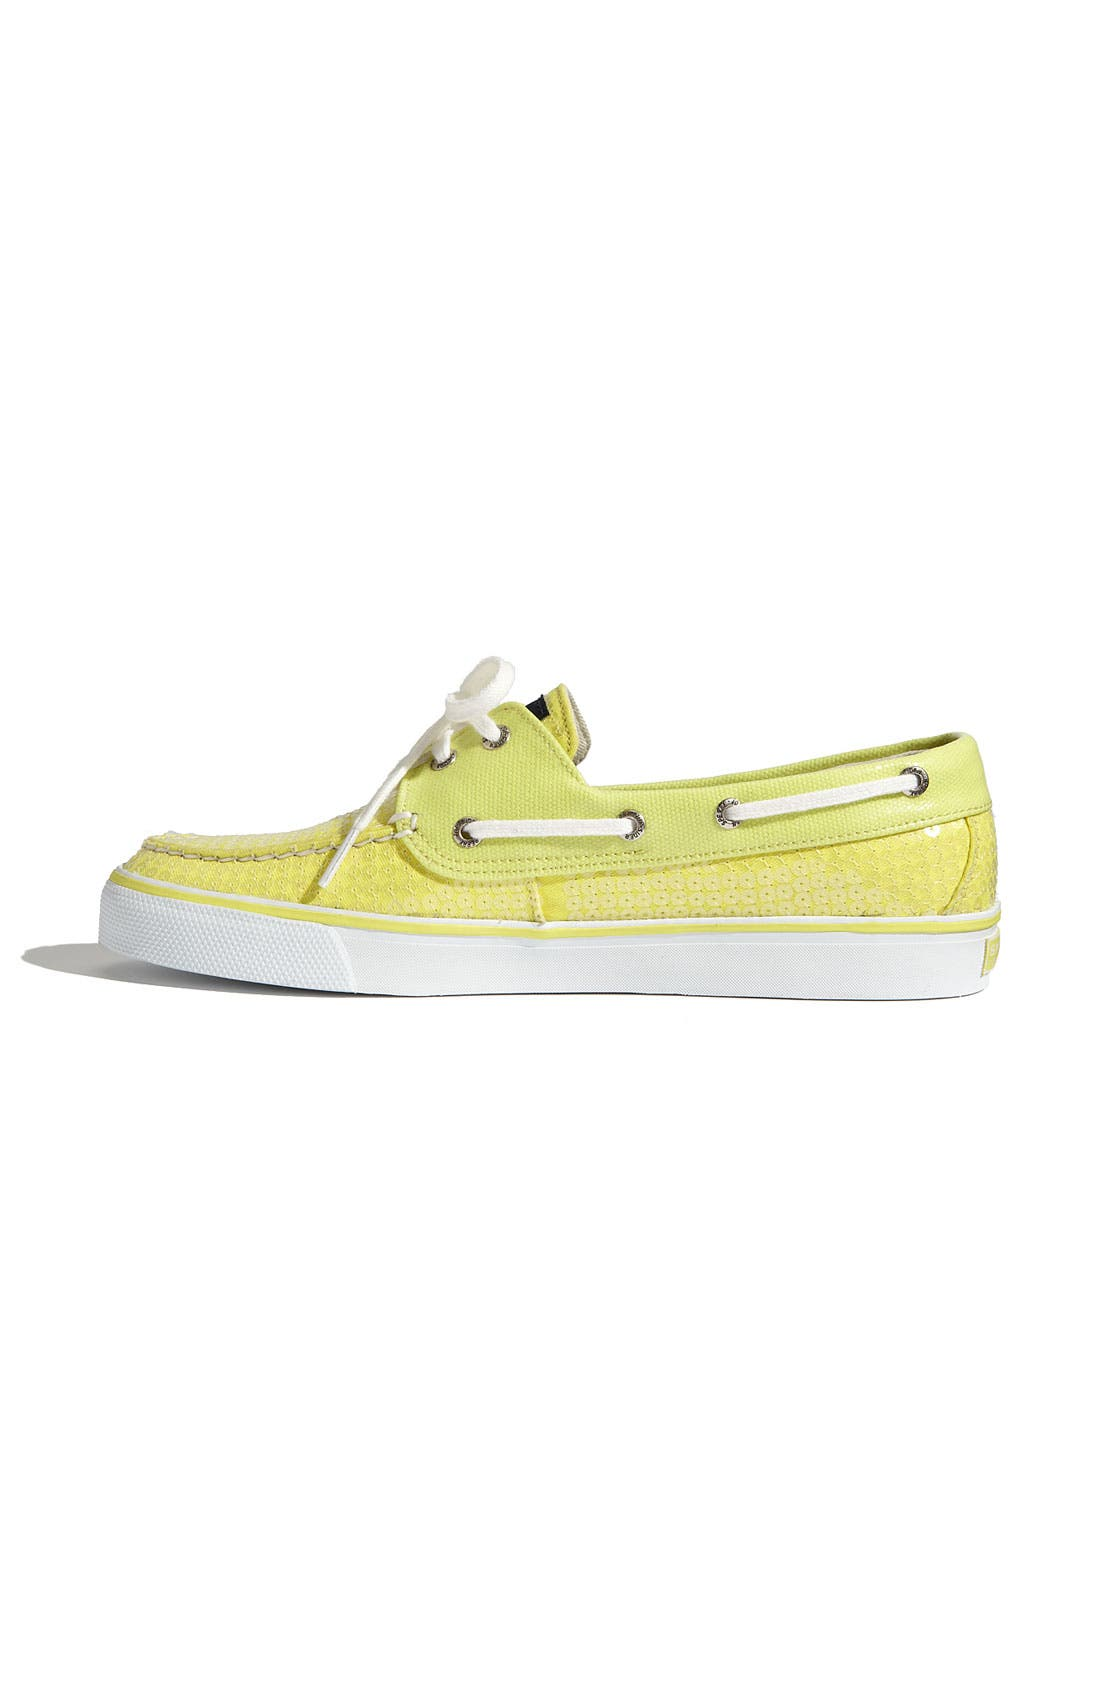 Top-Sider<sup>®</sup> 'Bahama' Sequined Boat Shoe,                             Alternate thumbnail 125, color,